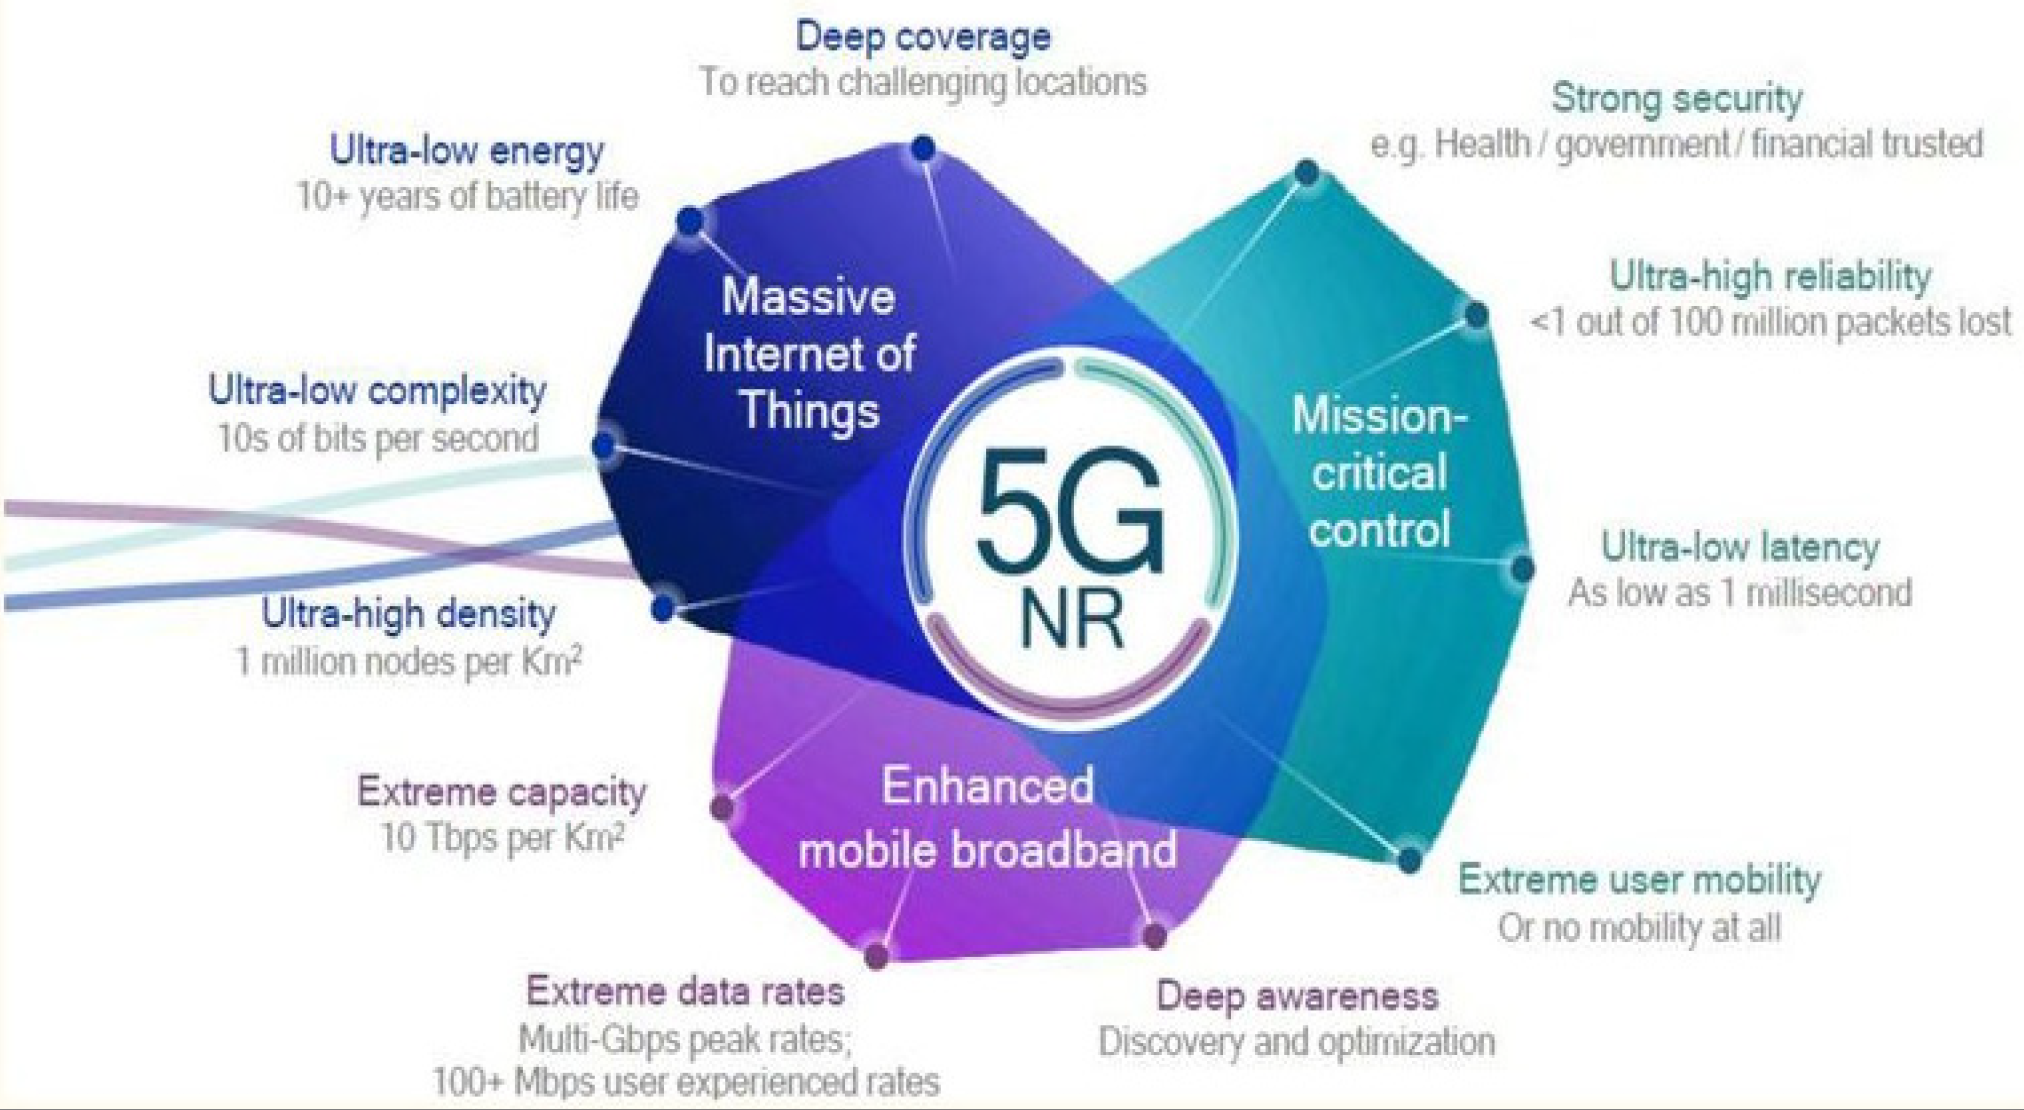 Figure 1: Diversity of 5G Use Cases and Requirements. Source: Qualcomm